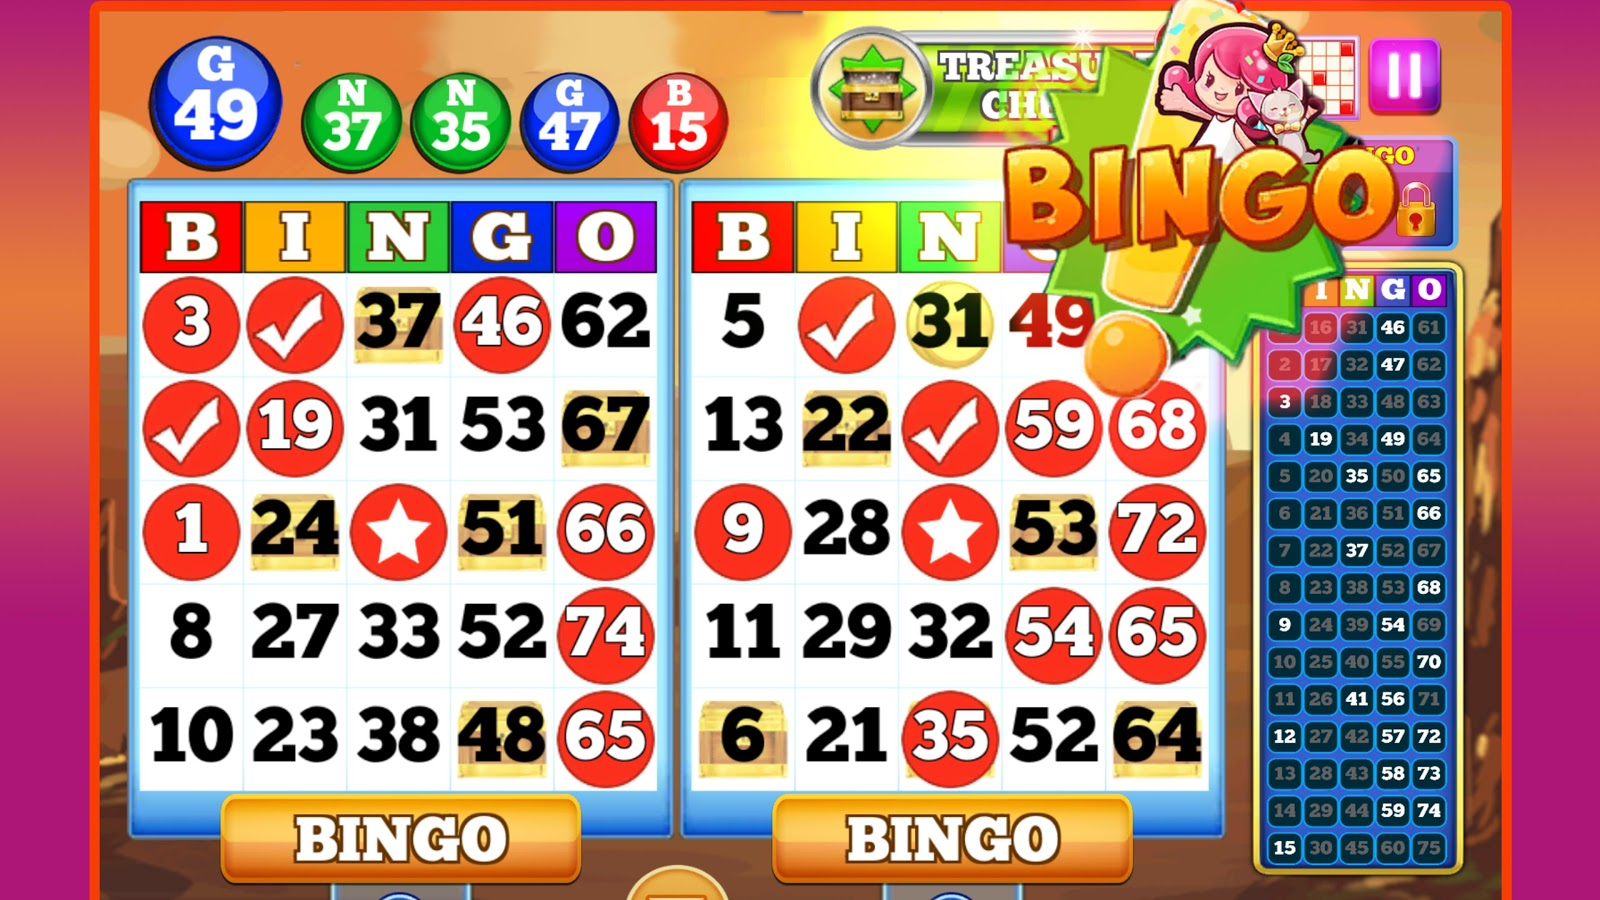 Cupid Bingo Online Bingo - Play this Game for Free Online